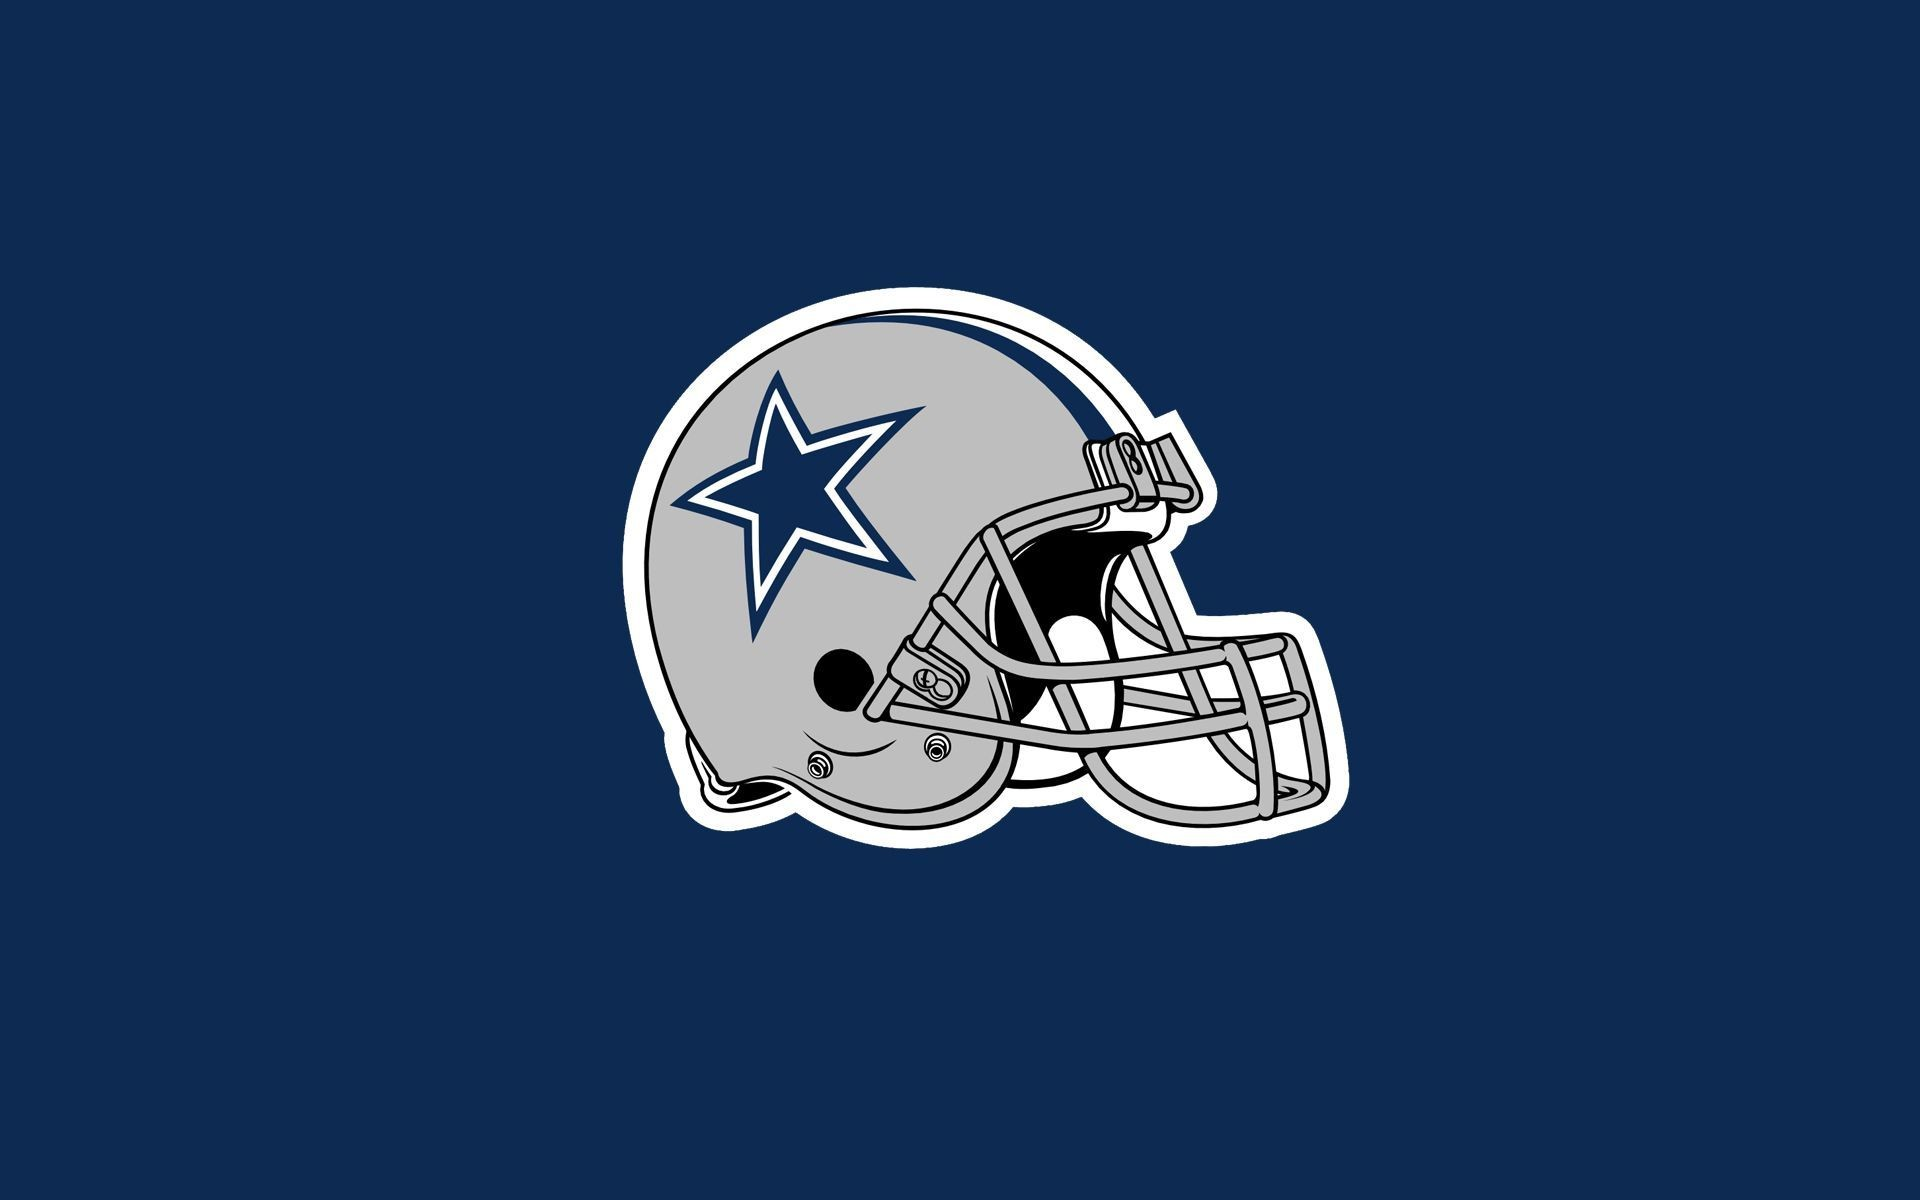 1920x1200 Wallpapers Of Dallas Cowboys Group 1136×640 Free Wallpapers Dallas Cowboys (32 Wallpapers